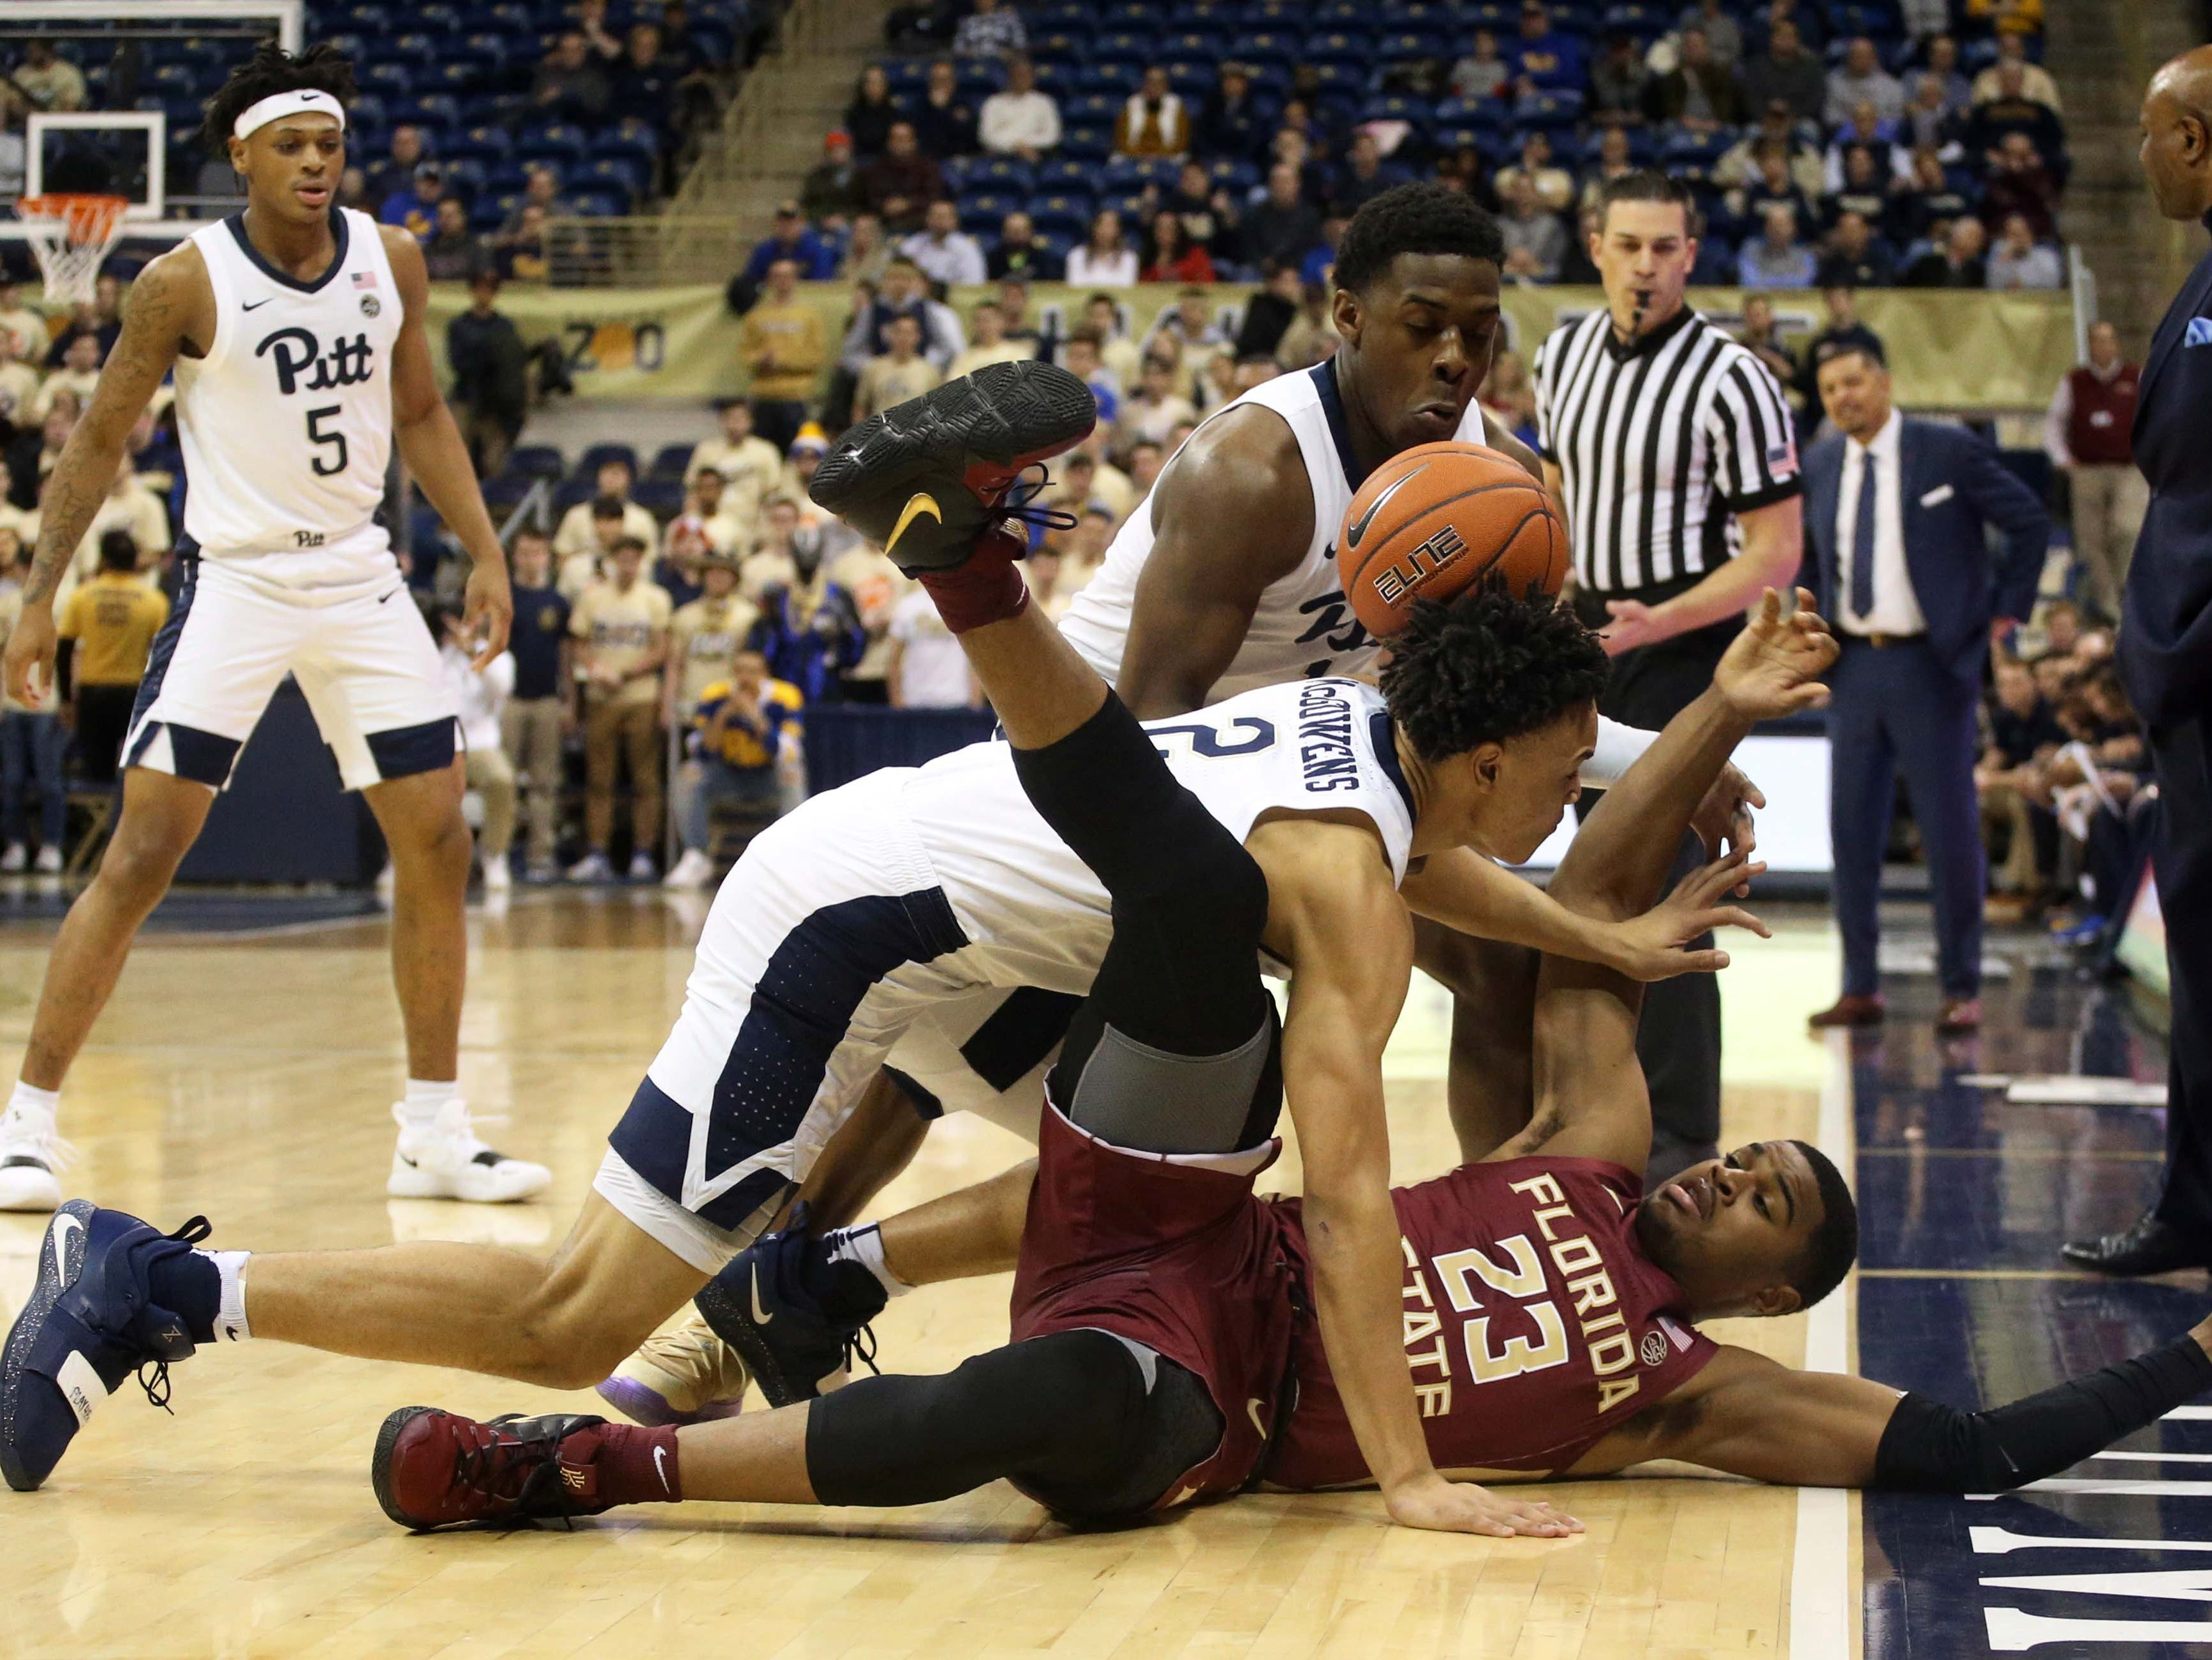 Jan 14, 2019; Pittsburgh, PA, USA; Pittsburgh Panthers guard Xavier Johnson (top) and guard Trey McGowens (2) steal the ball from Florida State Seminoles guard M.J. Walker (23) during the first half at the Petersen Events Center. Mandatory Credit: Charles LeClaire-USA TODAY Sports